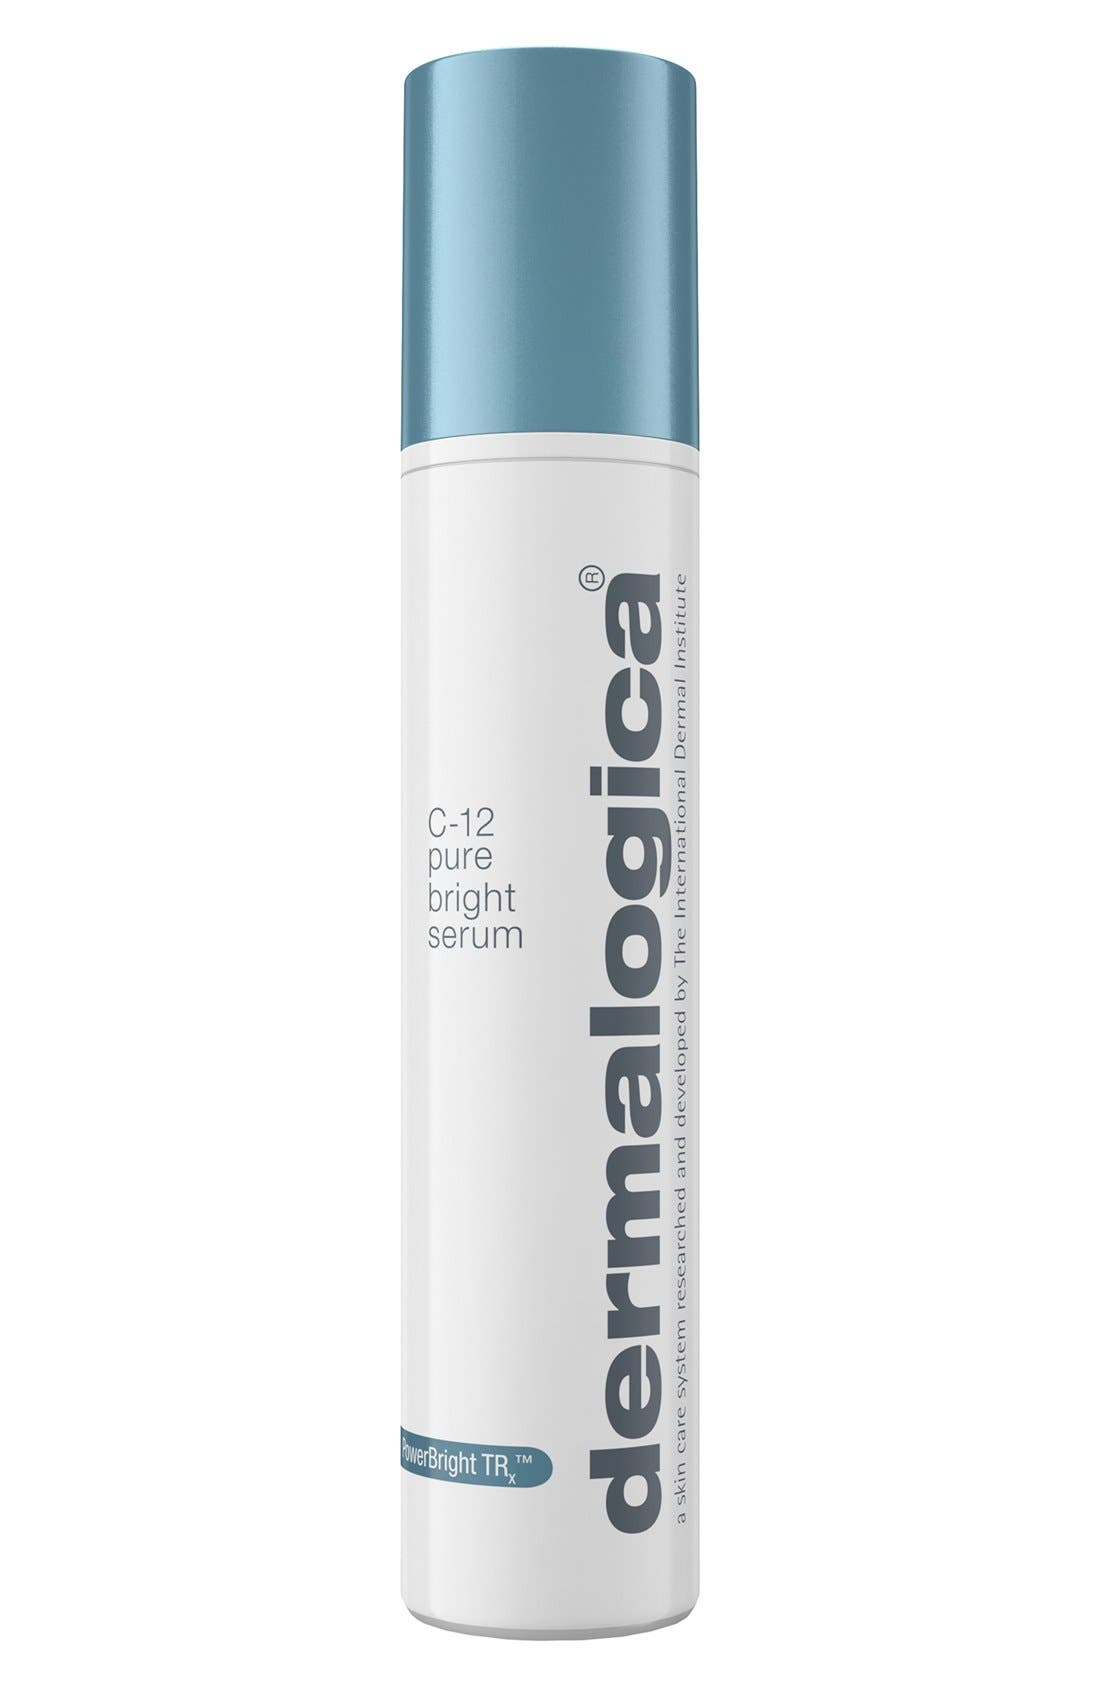 dermalogica® C-12 Pure Bright Serum